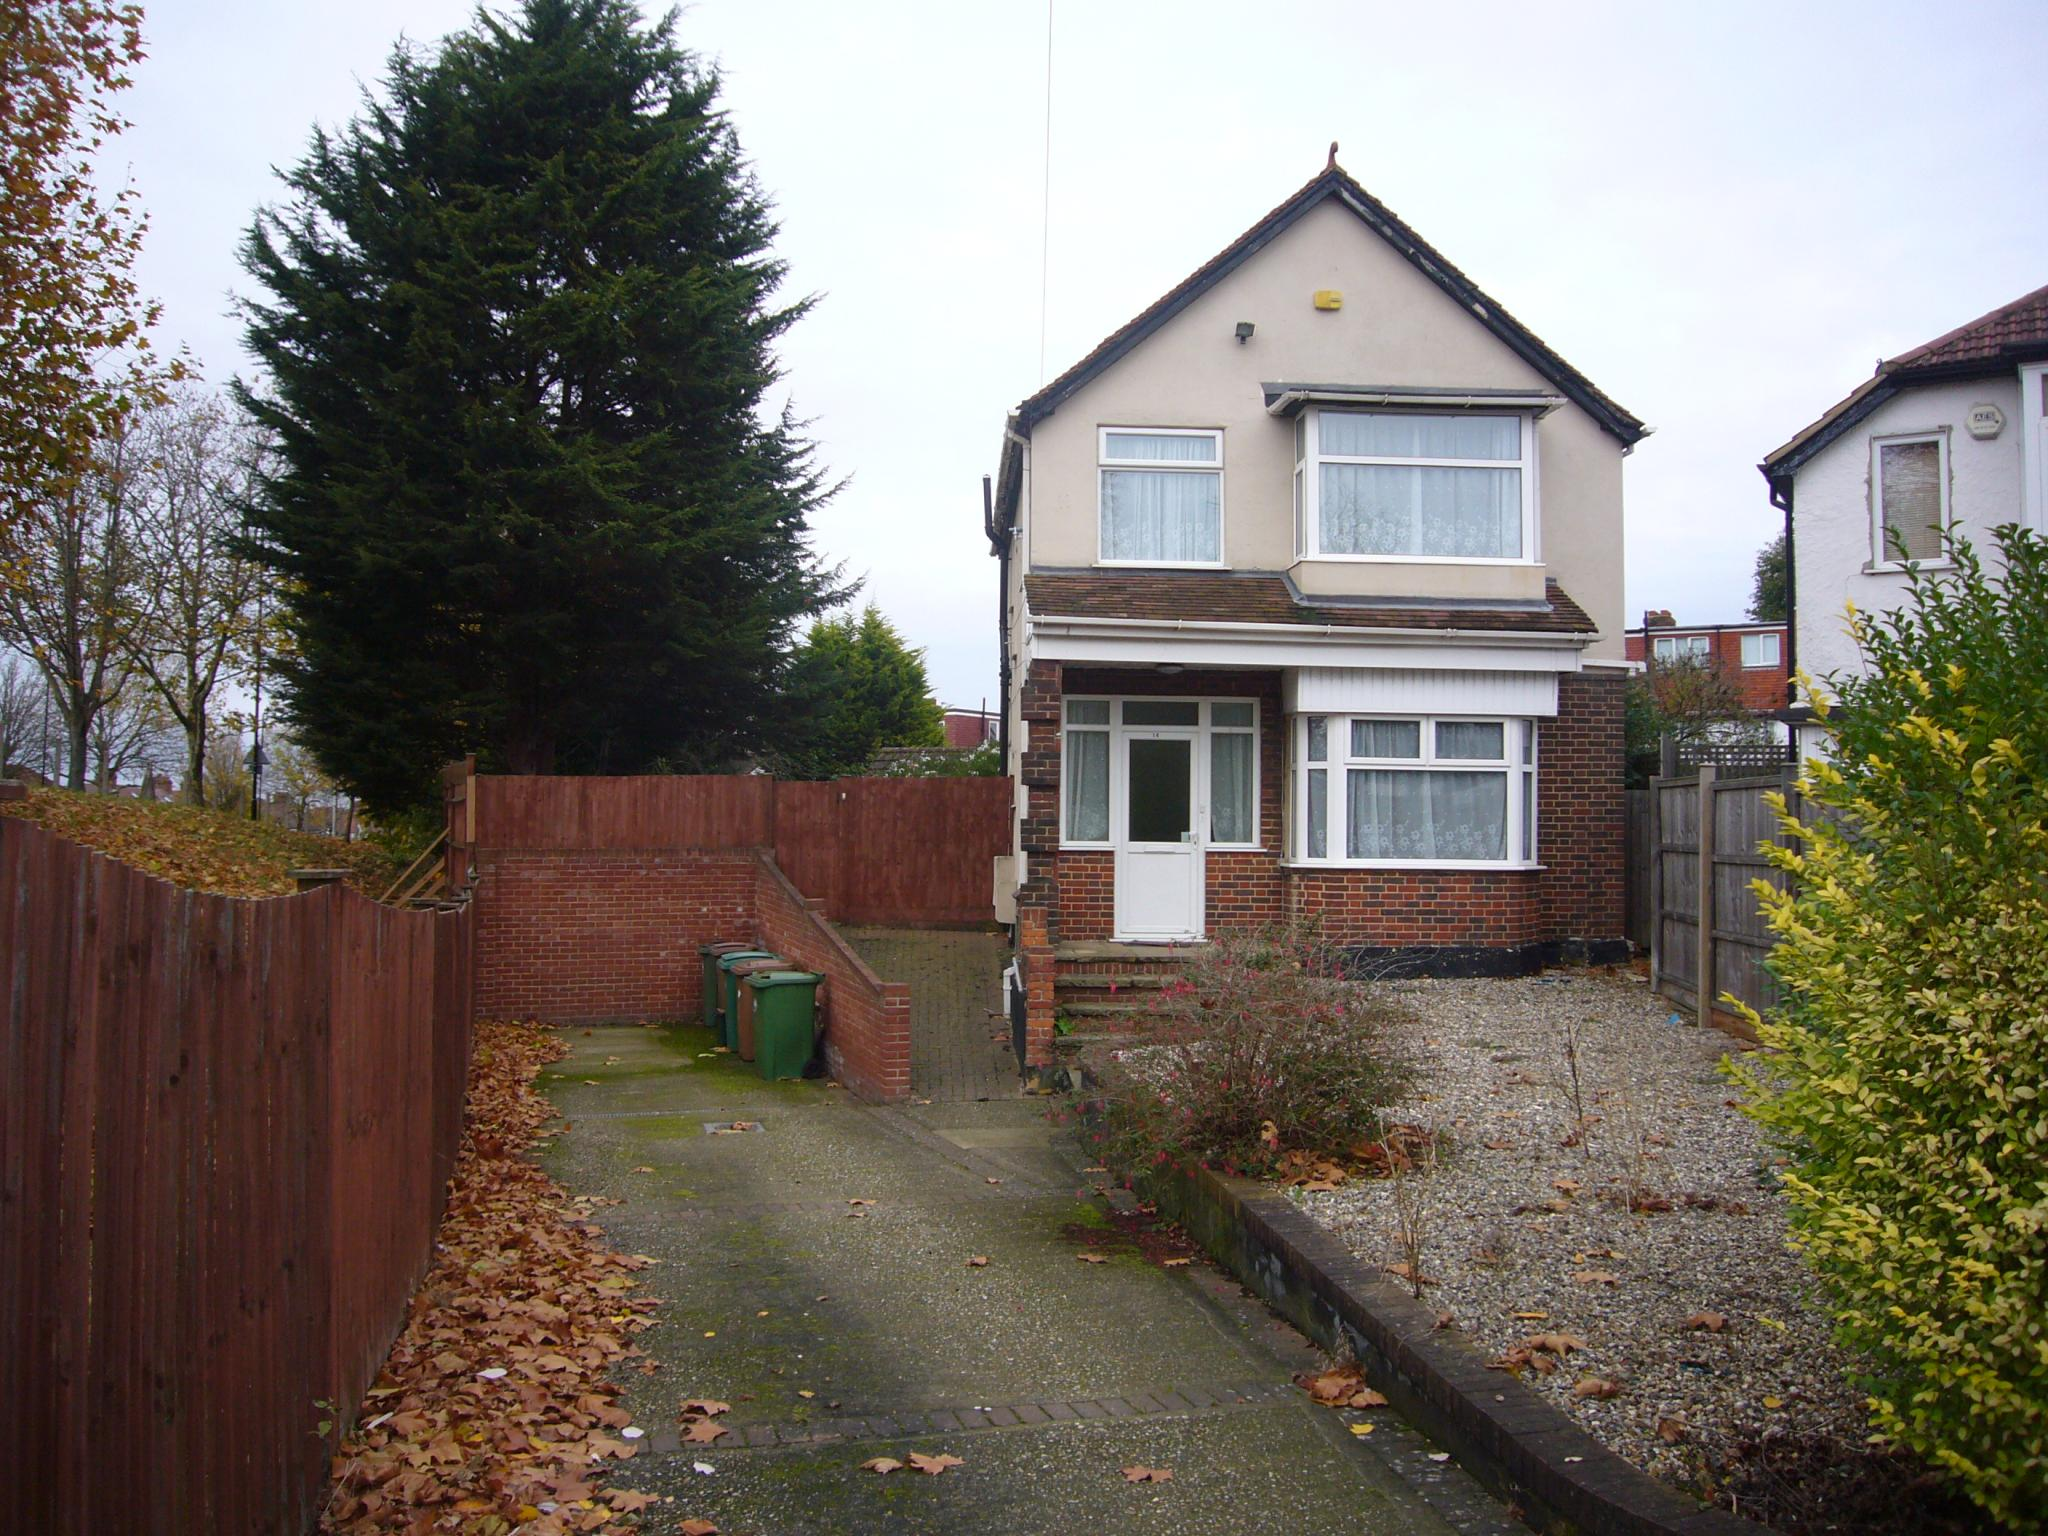 3 bedroom detached house Let Agreed in Cheam - Photograph 1.